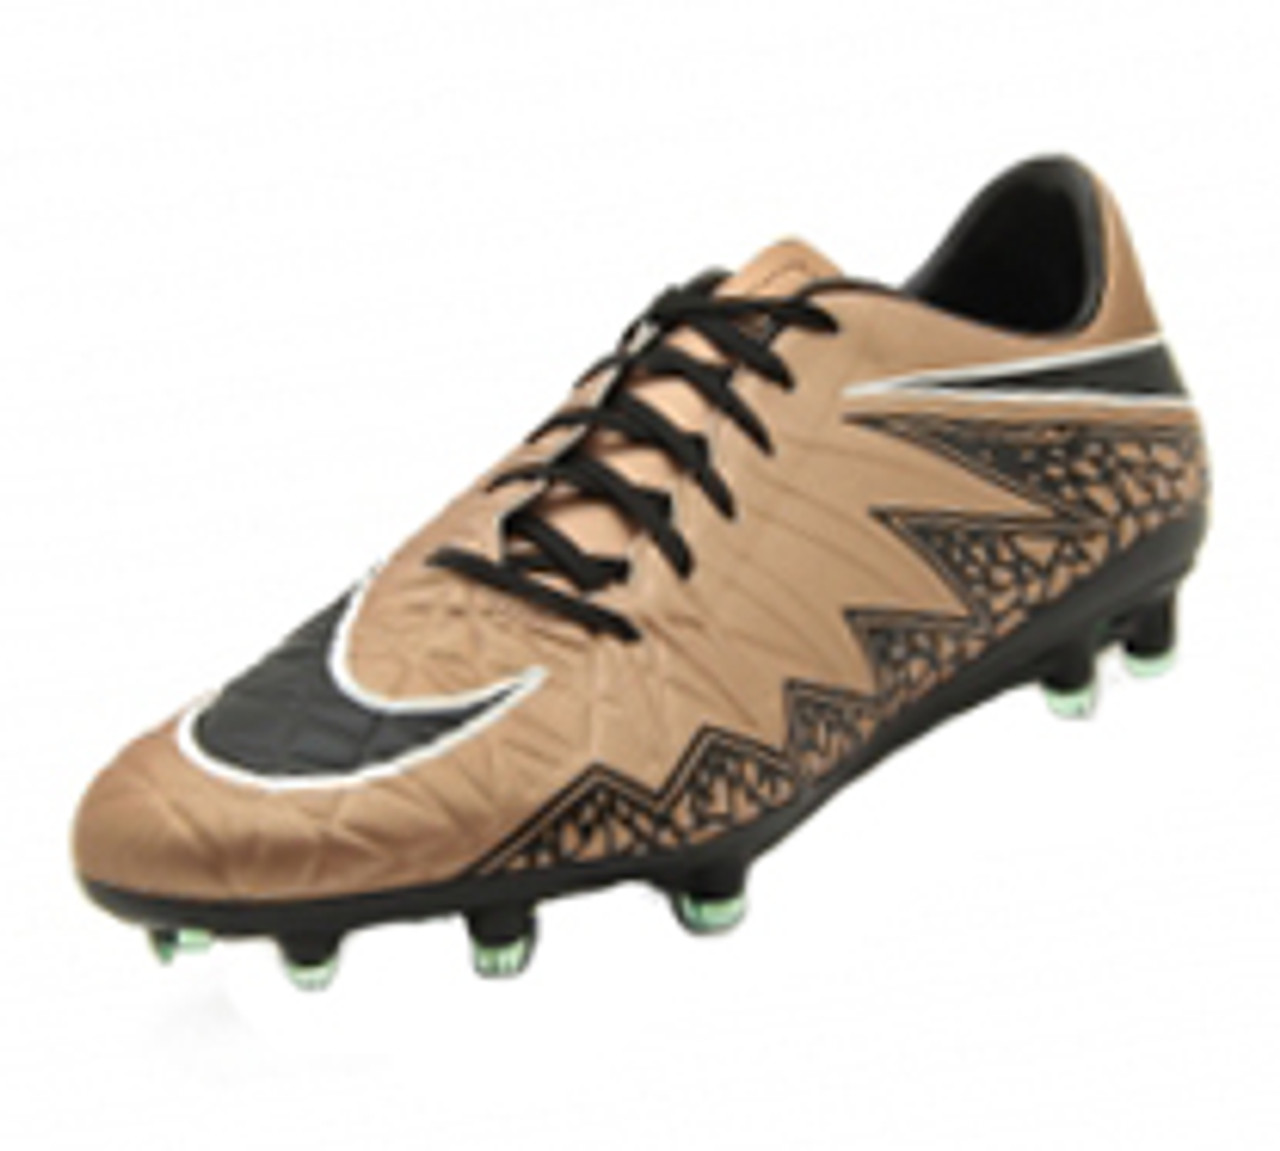 the latest c1074 626b0 Nike Hypervenom Phatal II FG - Metallic Red Brown/Black/Green/Glow White  (053019)